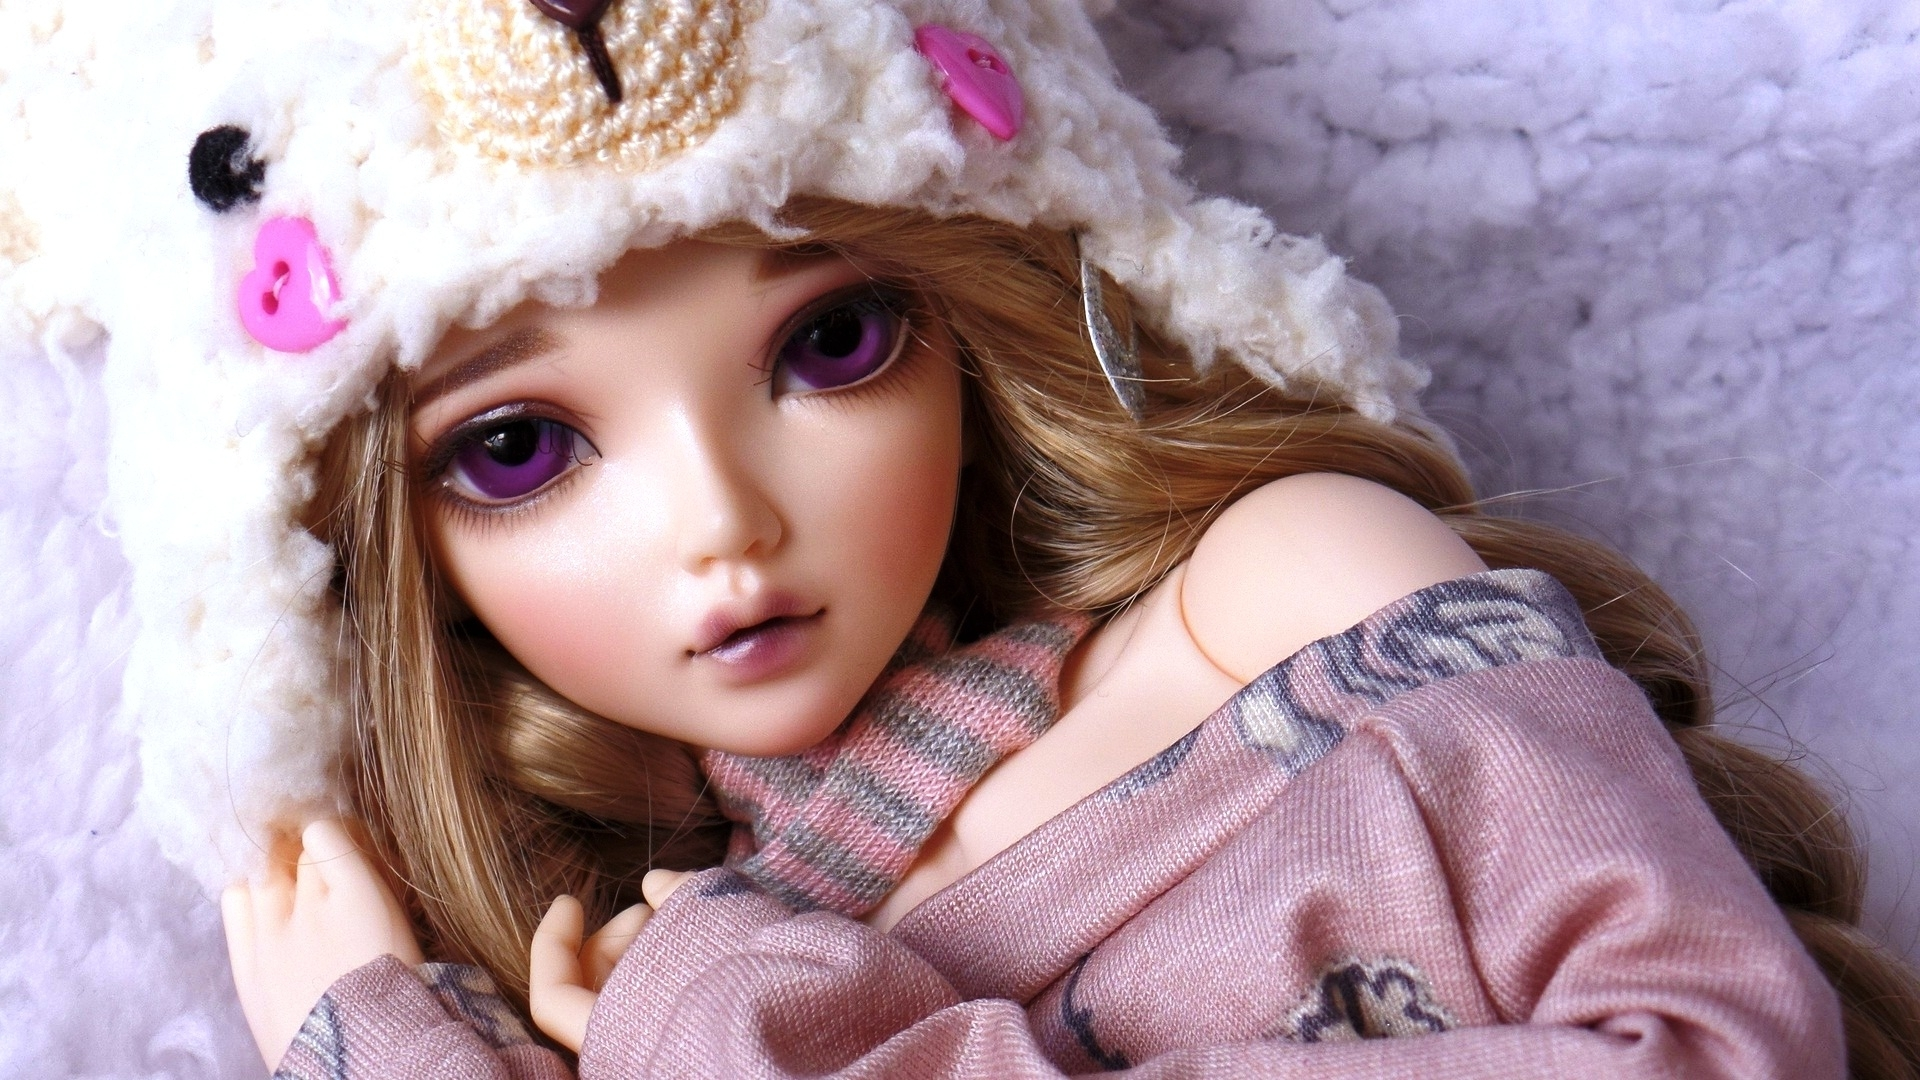 10 most popular nice and cute wallpapers full hd 1080p for pc